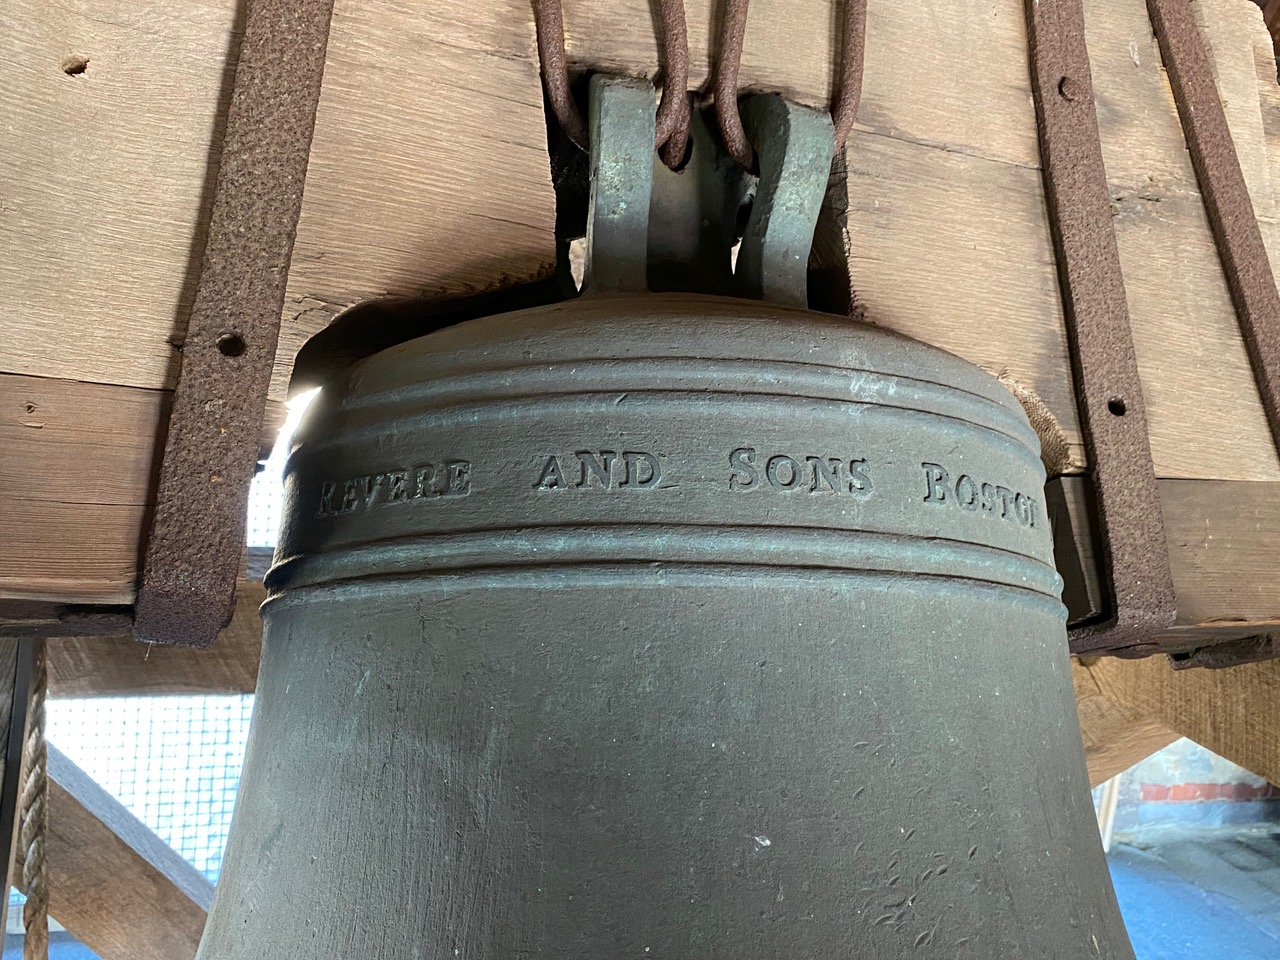 """closeup view of bell showing inscription """"Revere and Sons Boston"""""""